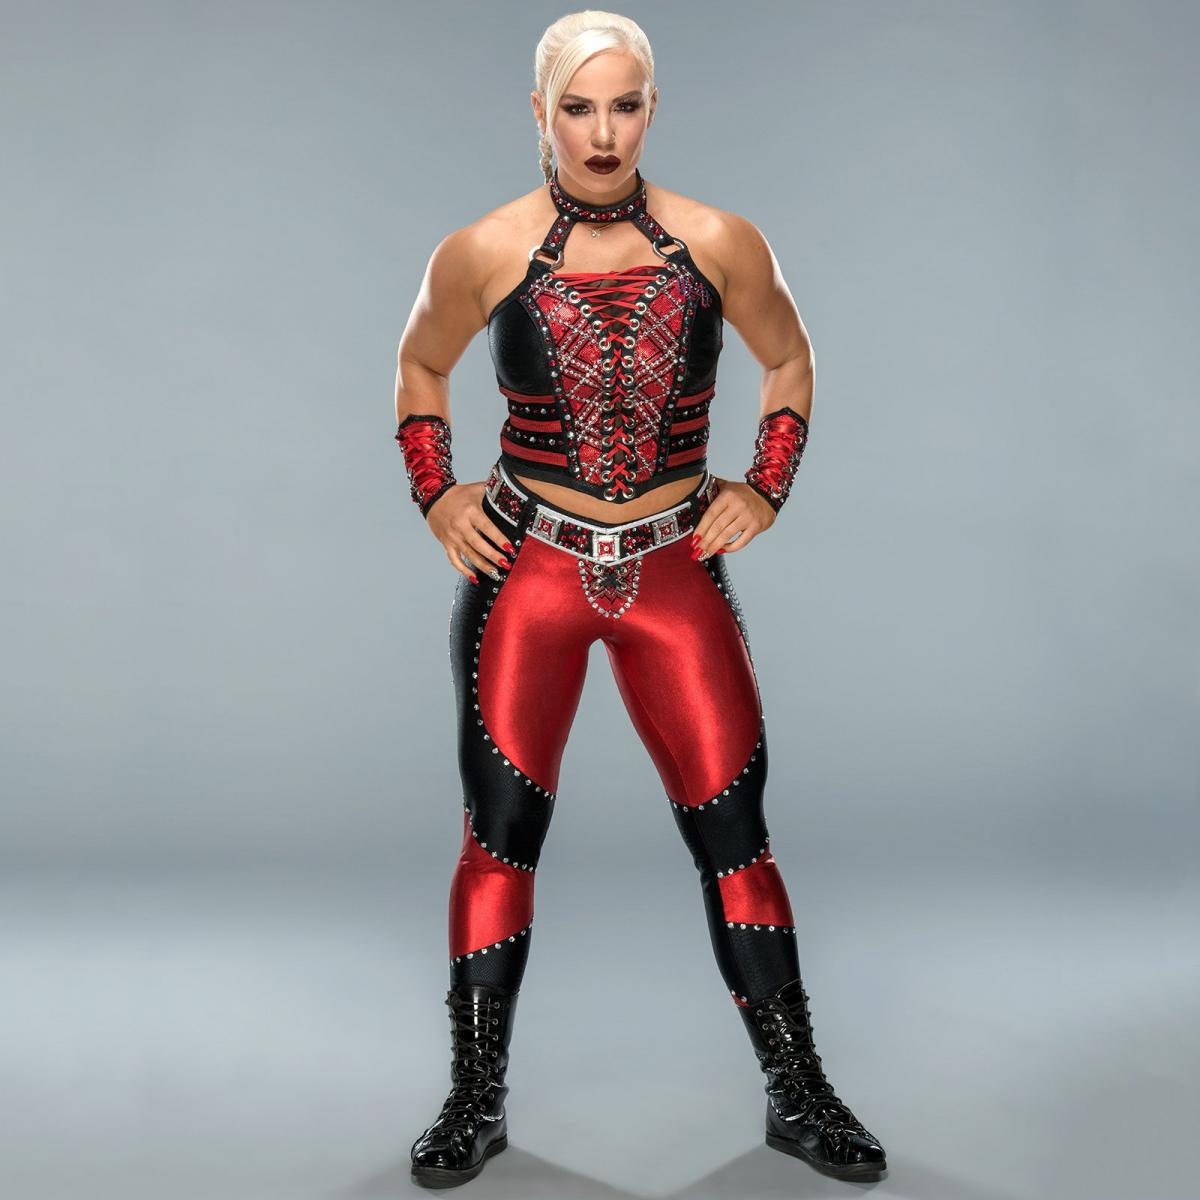 Wrestlemania-34-Ring-Gear-Dana-Brooke-ww